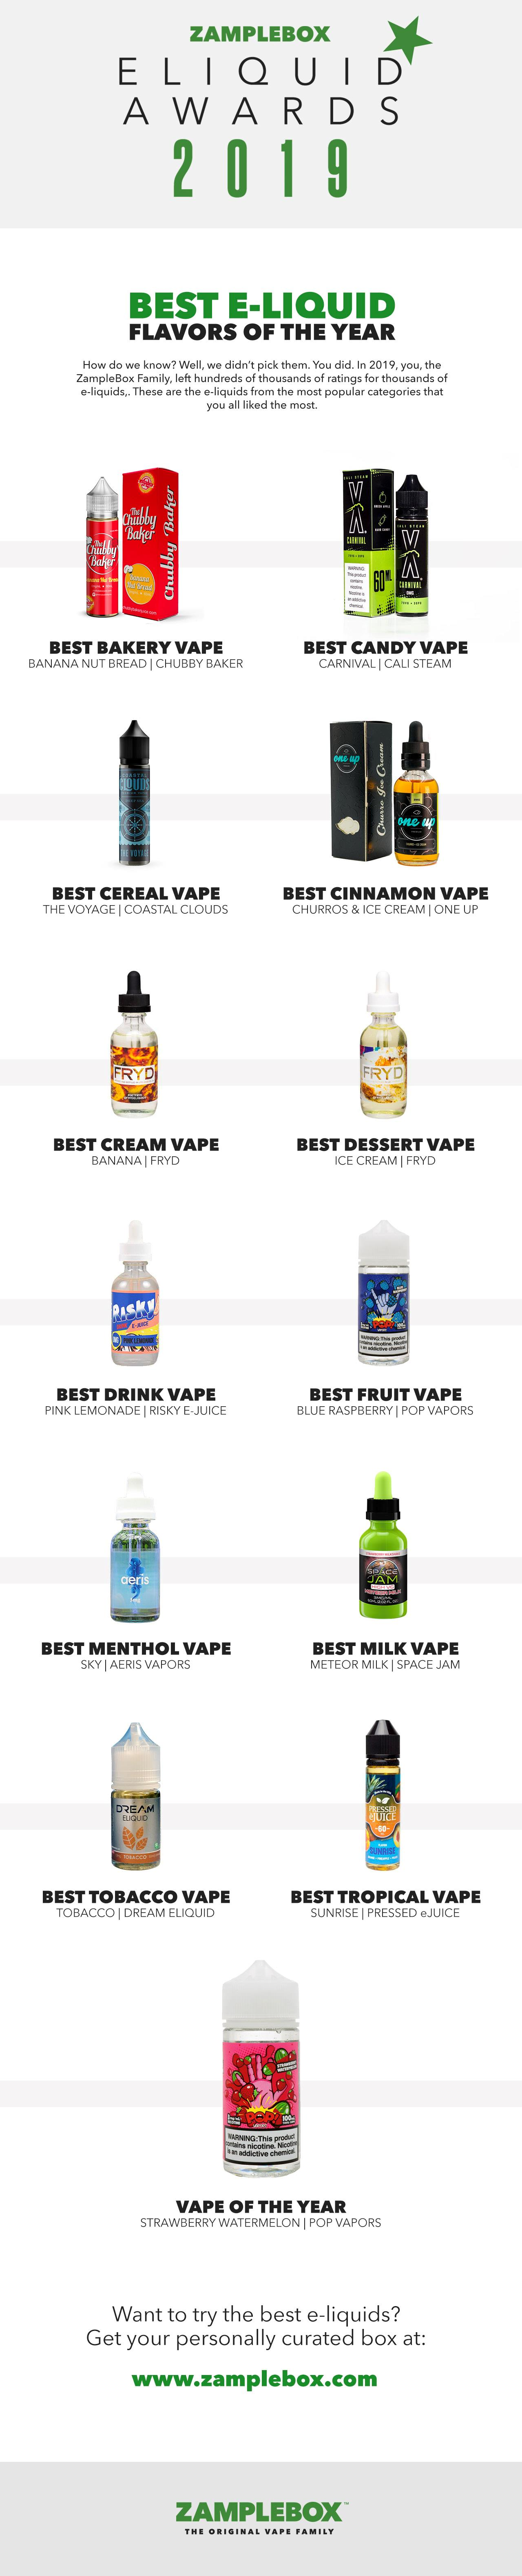 Best E-Juice Flavors